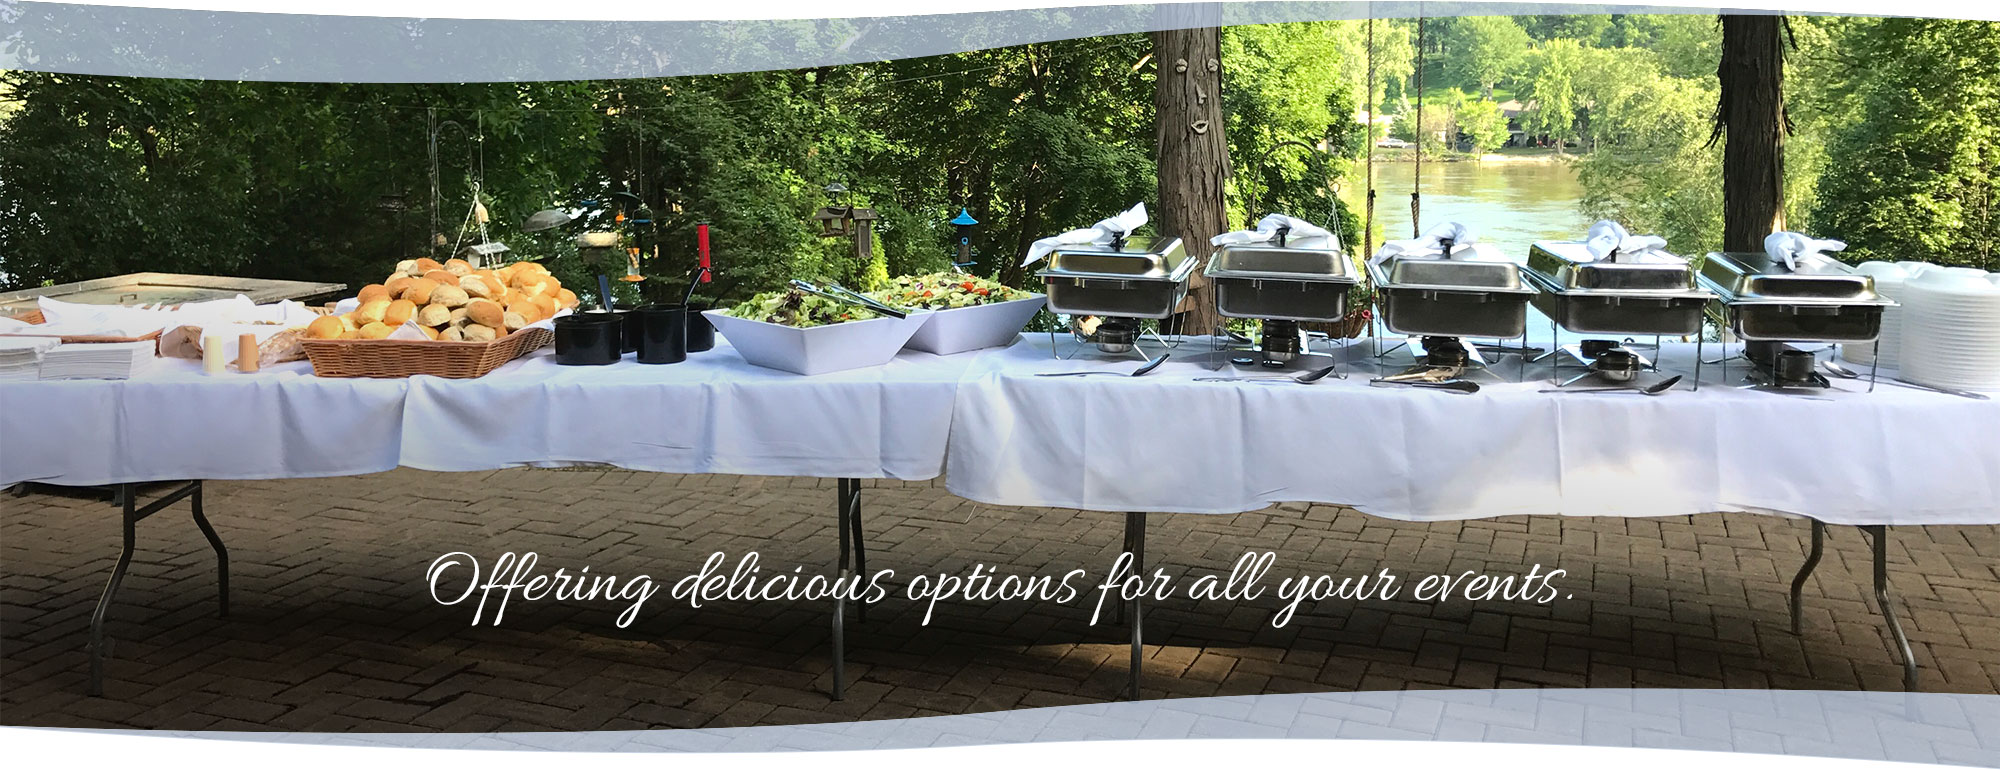 Offering delicious options for all your events